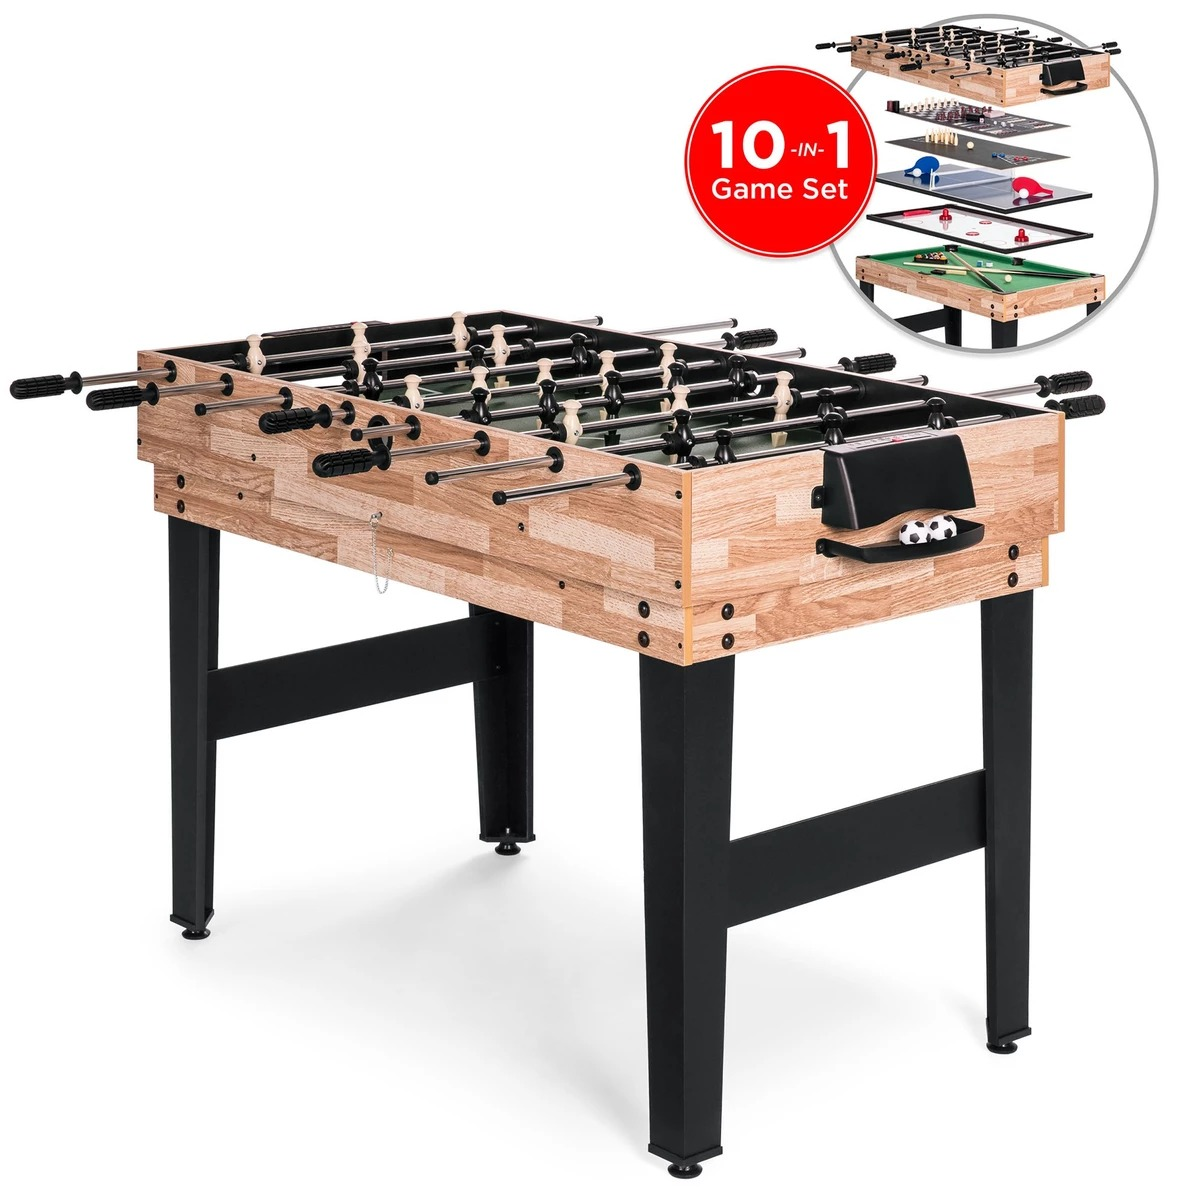 ihocon: [最後一天] Best Choice Products 2x4ft 10-in-1 Combo Game Table Set w/ Billiards, Foosball, Ping Pong, & More 10合1 遊戲桌